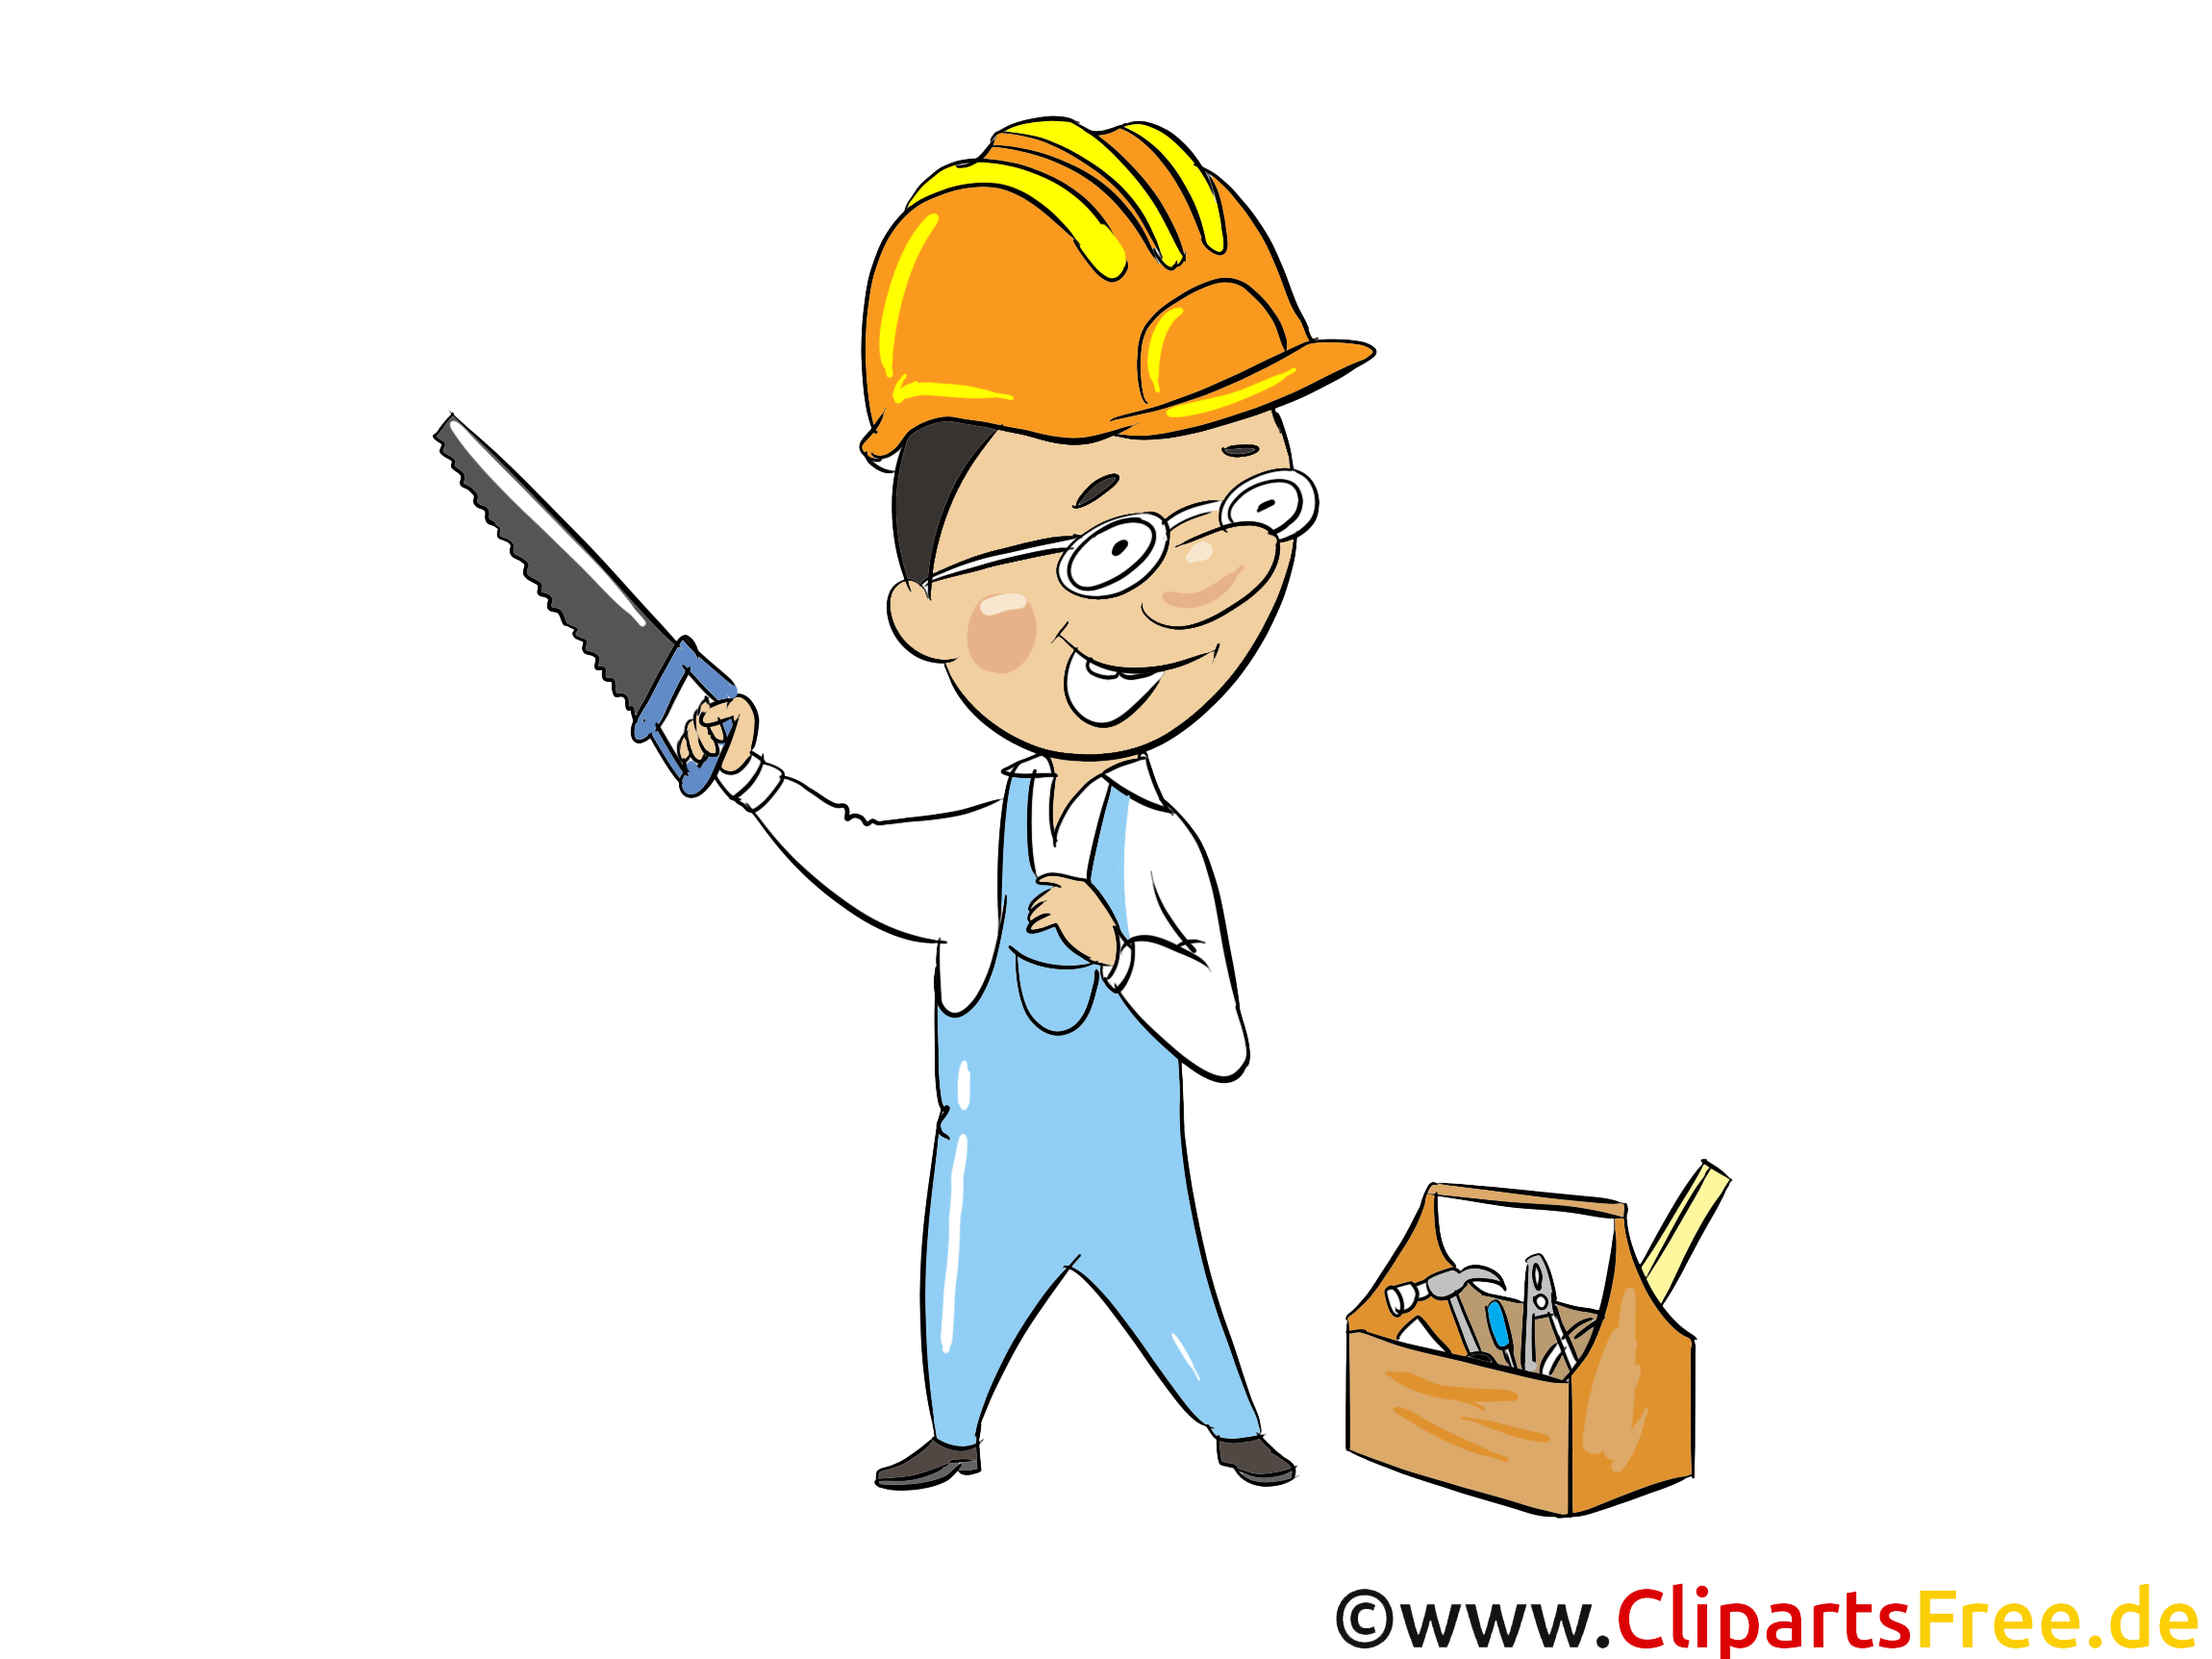 Cliparts arbeit image royalty free download Industrie Bilder, Cliparts, Cartoons, Grafiken, Illustrationen ... image royalty free download